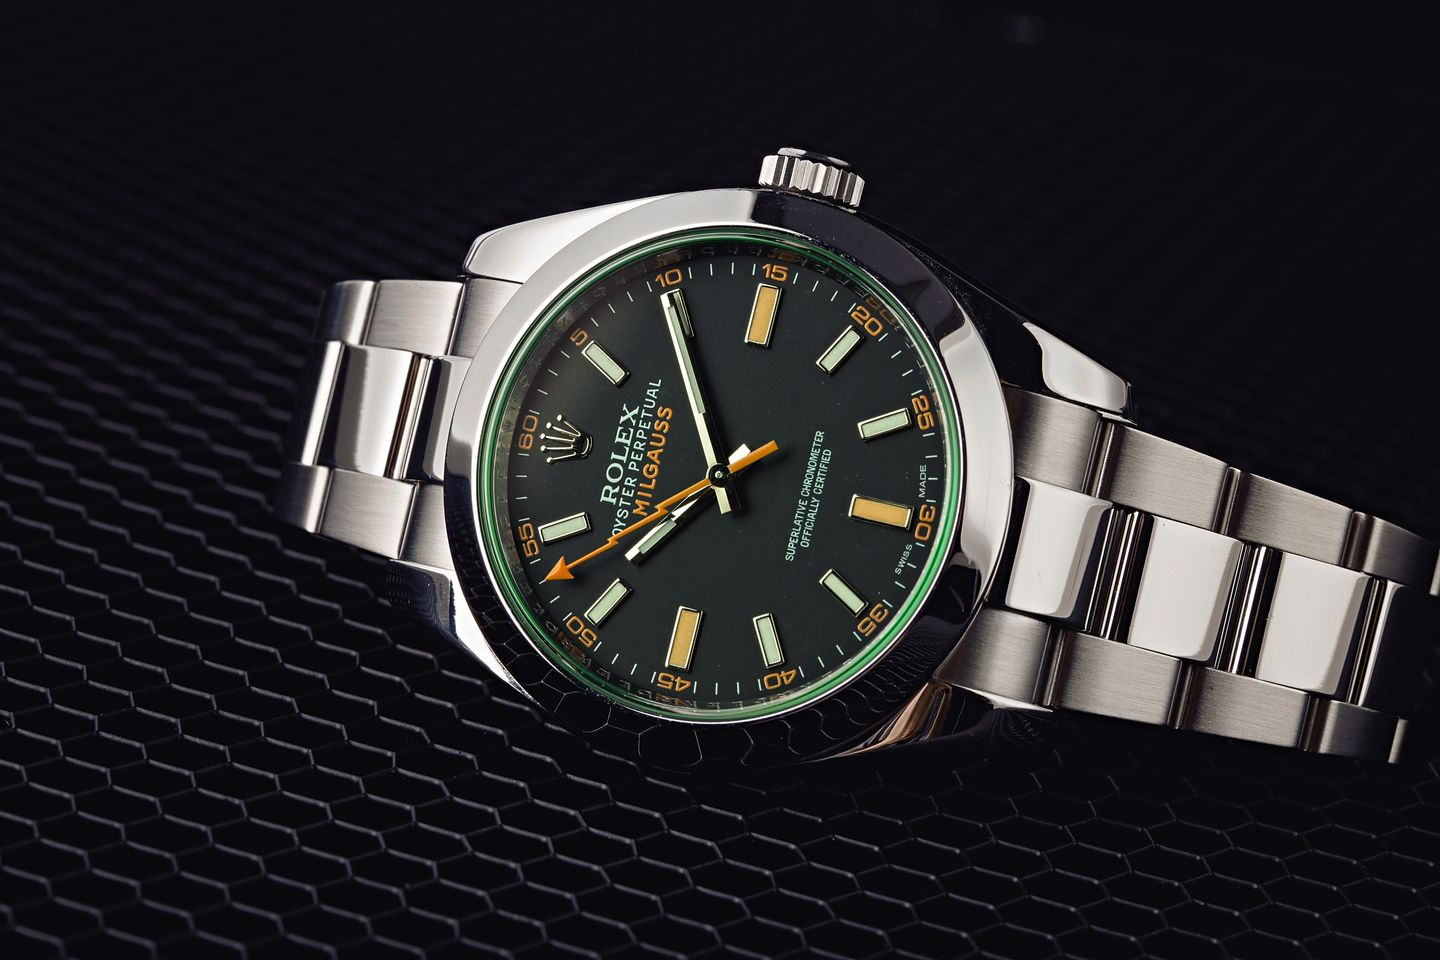 Antimagnetic Rolex Watches Rolex Milgauss 116400 vs Air-King 116900